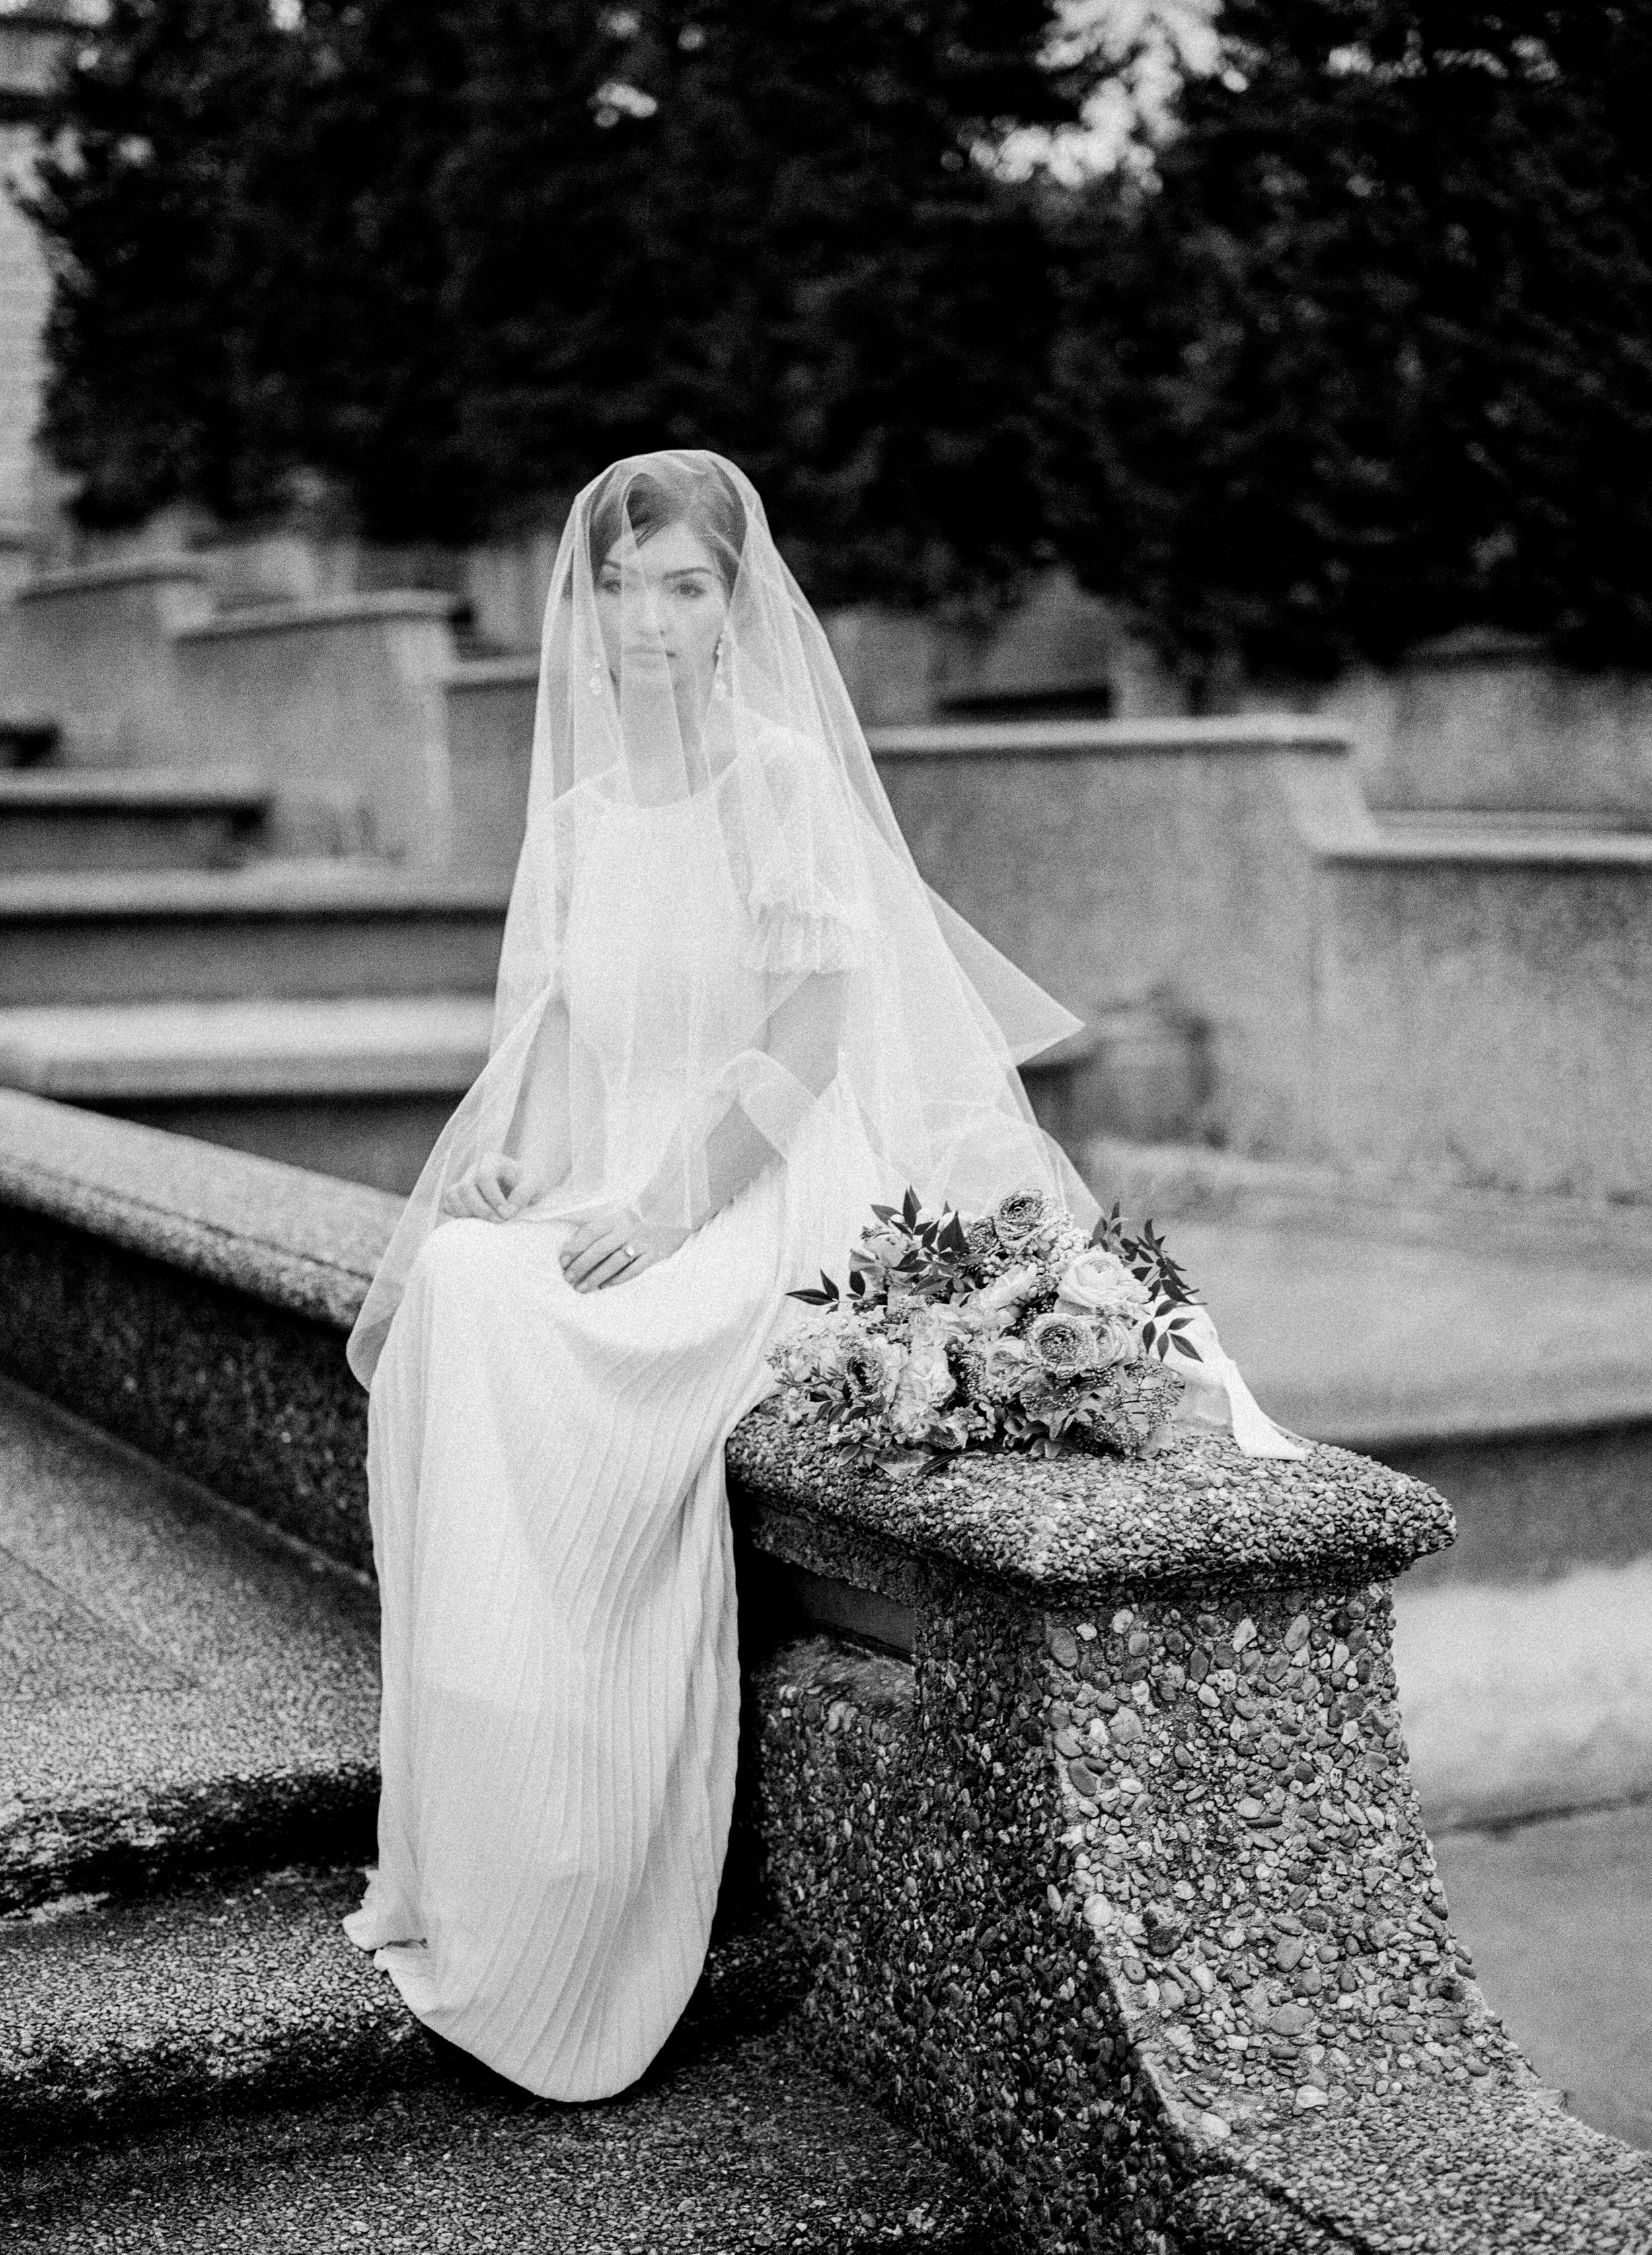 meridian-hill-park-wedding-photographer-michelle-whitley